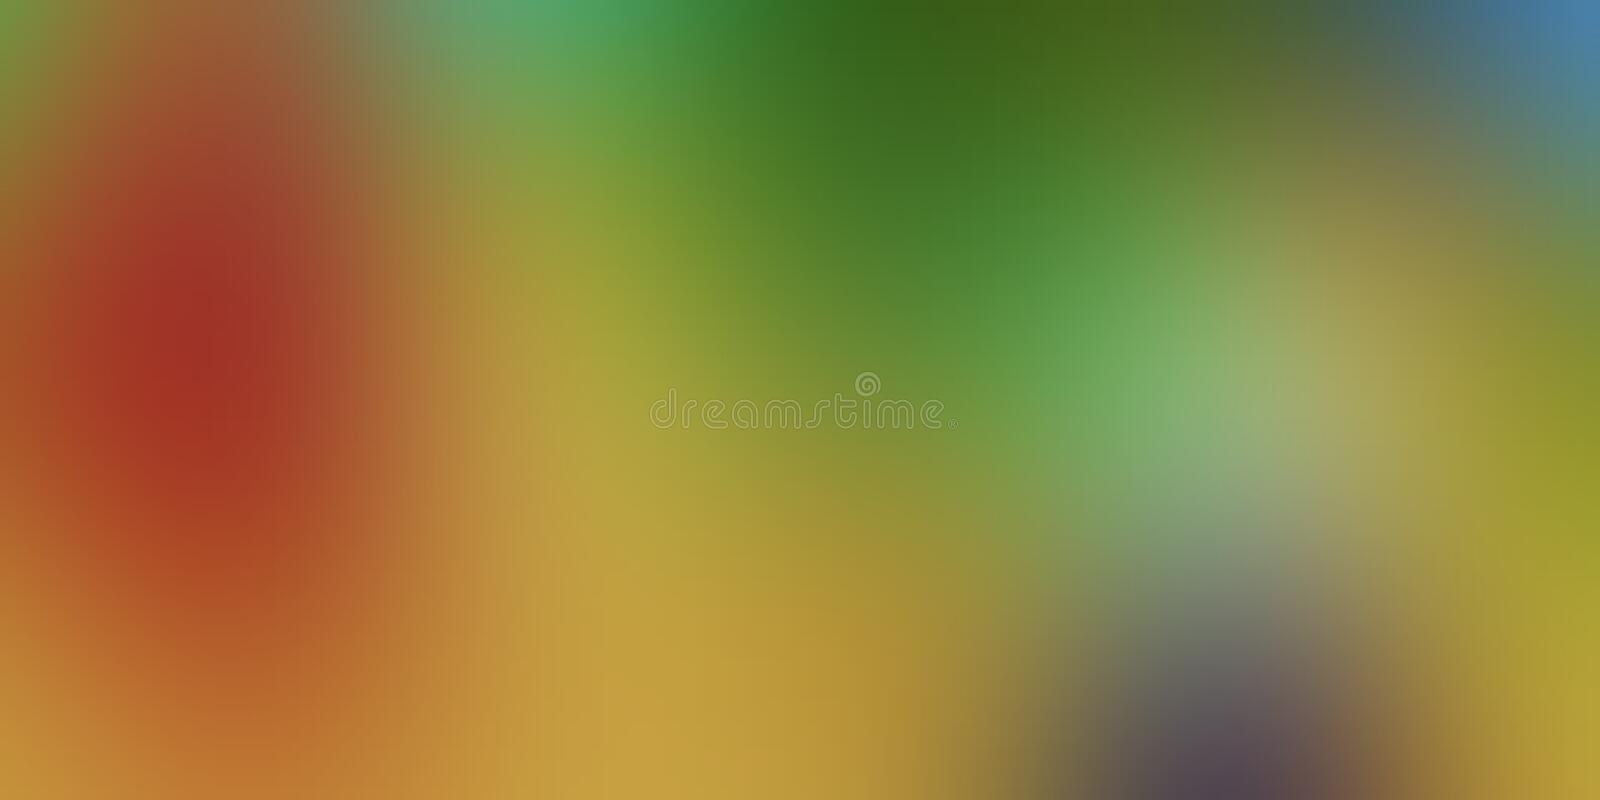 Colorful blur abstract background vector design, colorful blurred shaded background, vivid color vector illustration. stock photo